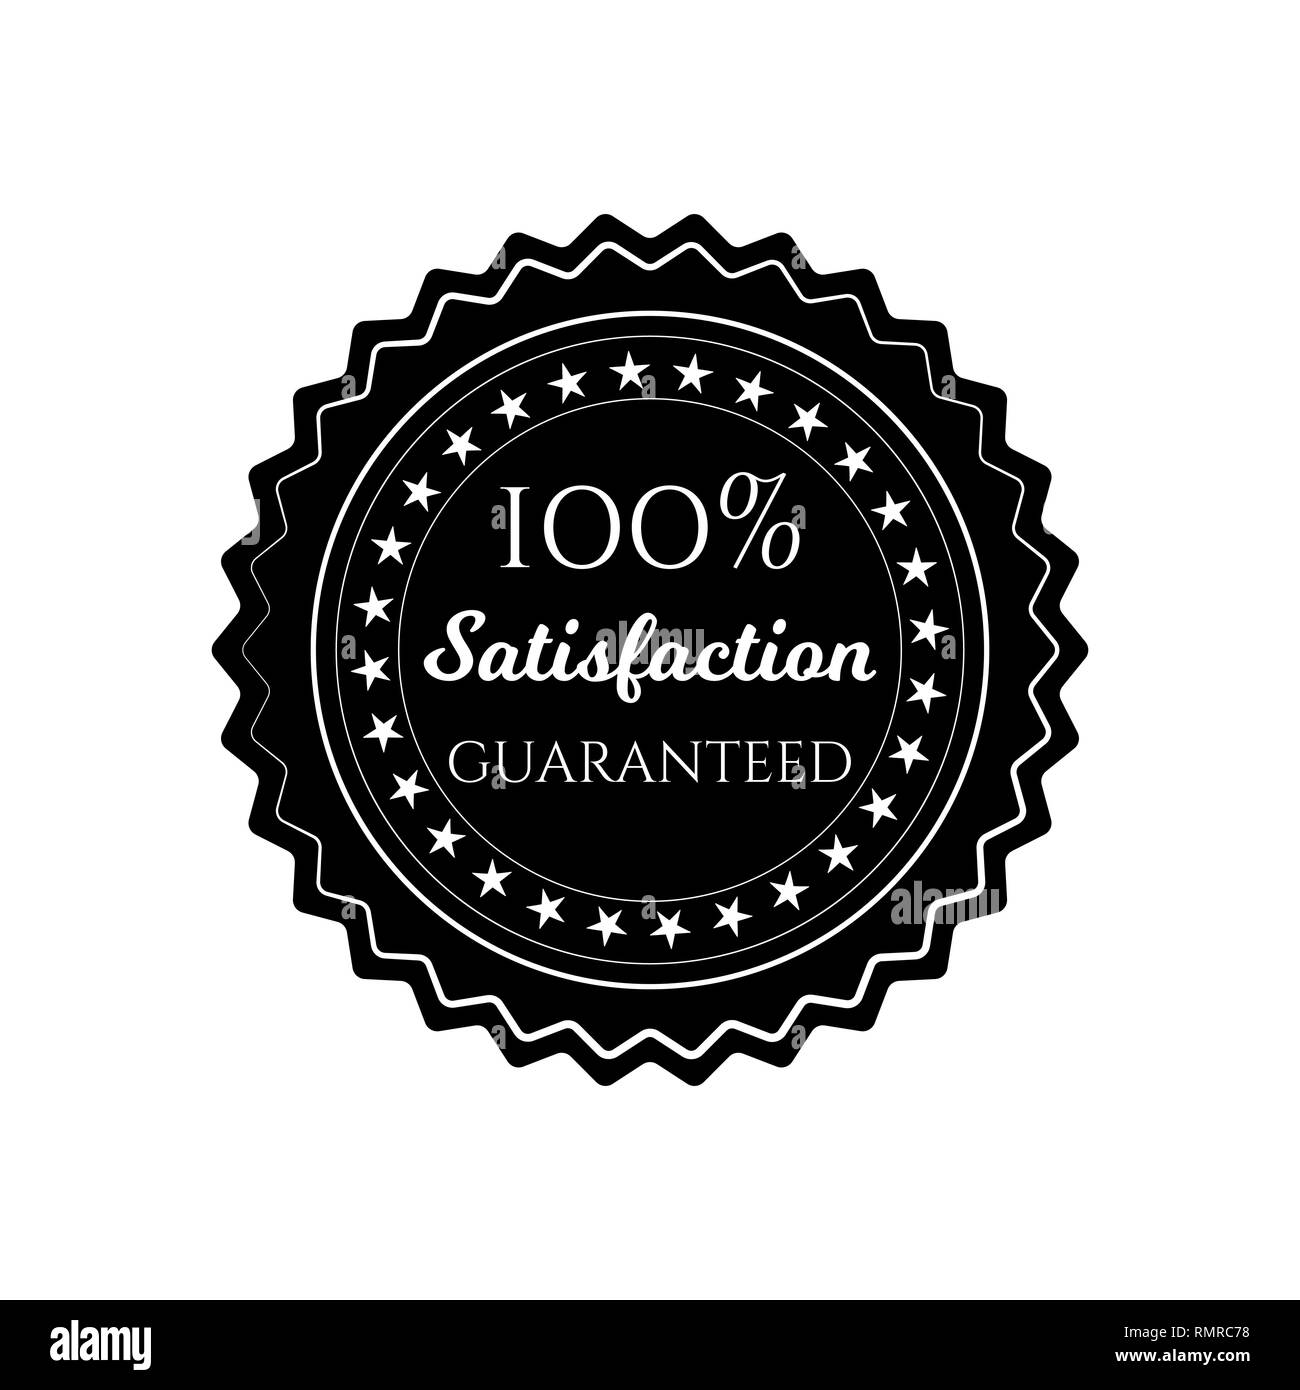 satisfaction guaranteed circle seal stamp on white background - Stock Vector